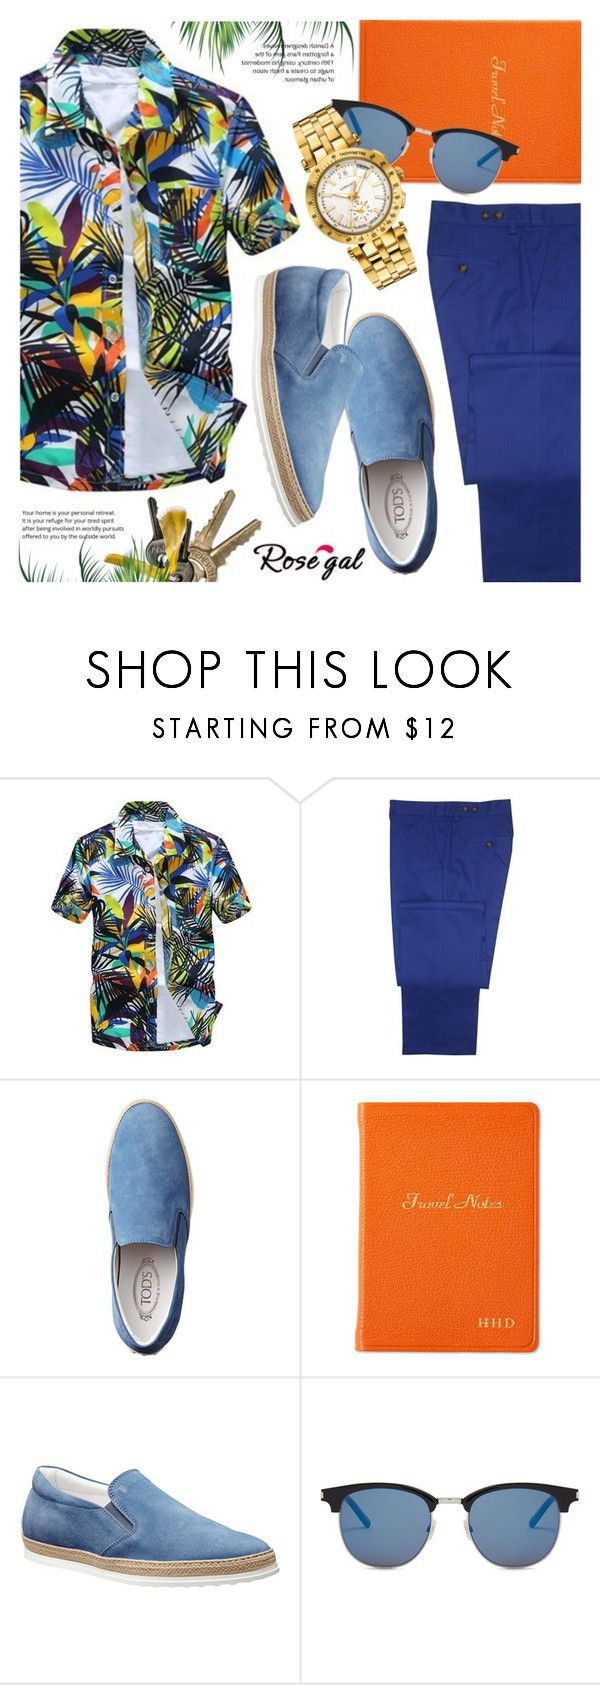 """Rosegal Hawaiian shirt for men"" by vn1ta ❤ liked on Polyvore featuring Gresham Blake, Graphic Image, Yves Saint Laurent, Versace, men's fashion and menswear"